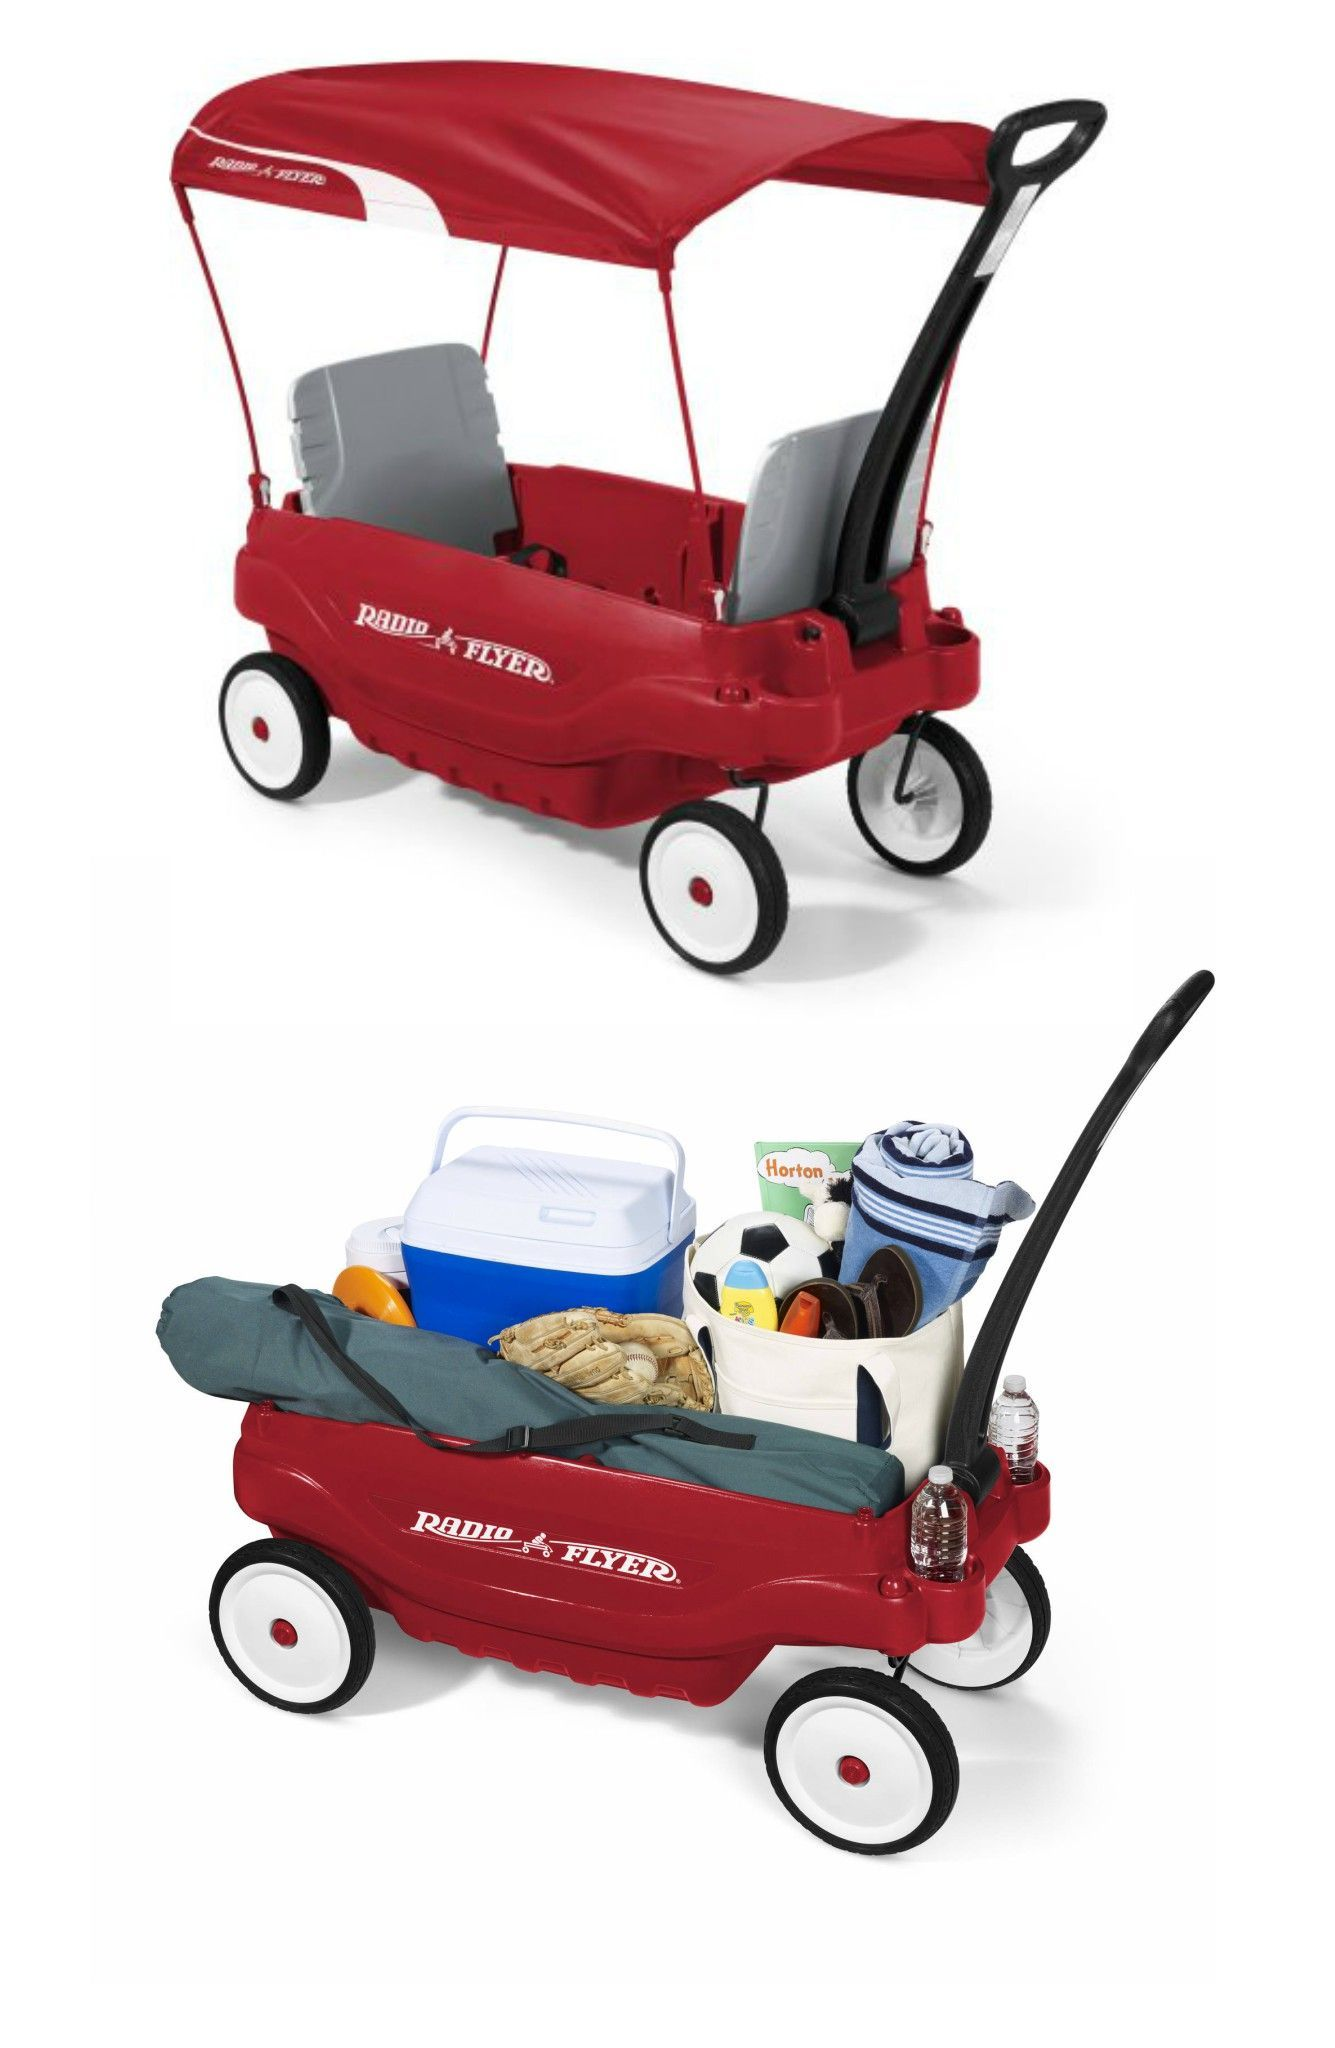 Radio Flyer Deluxe Family Canopy Wagon ONLY 89.00 Shipped